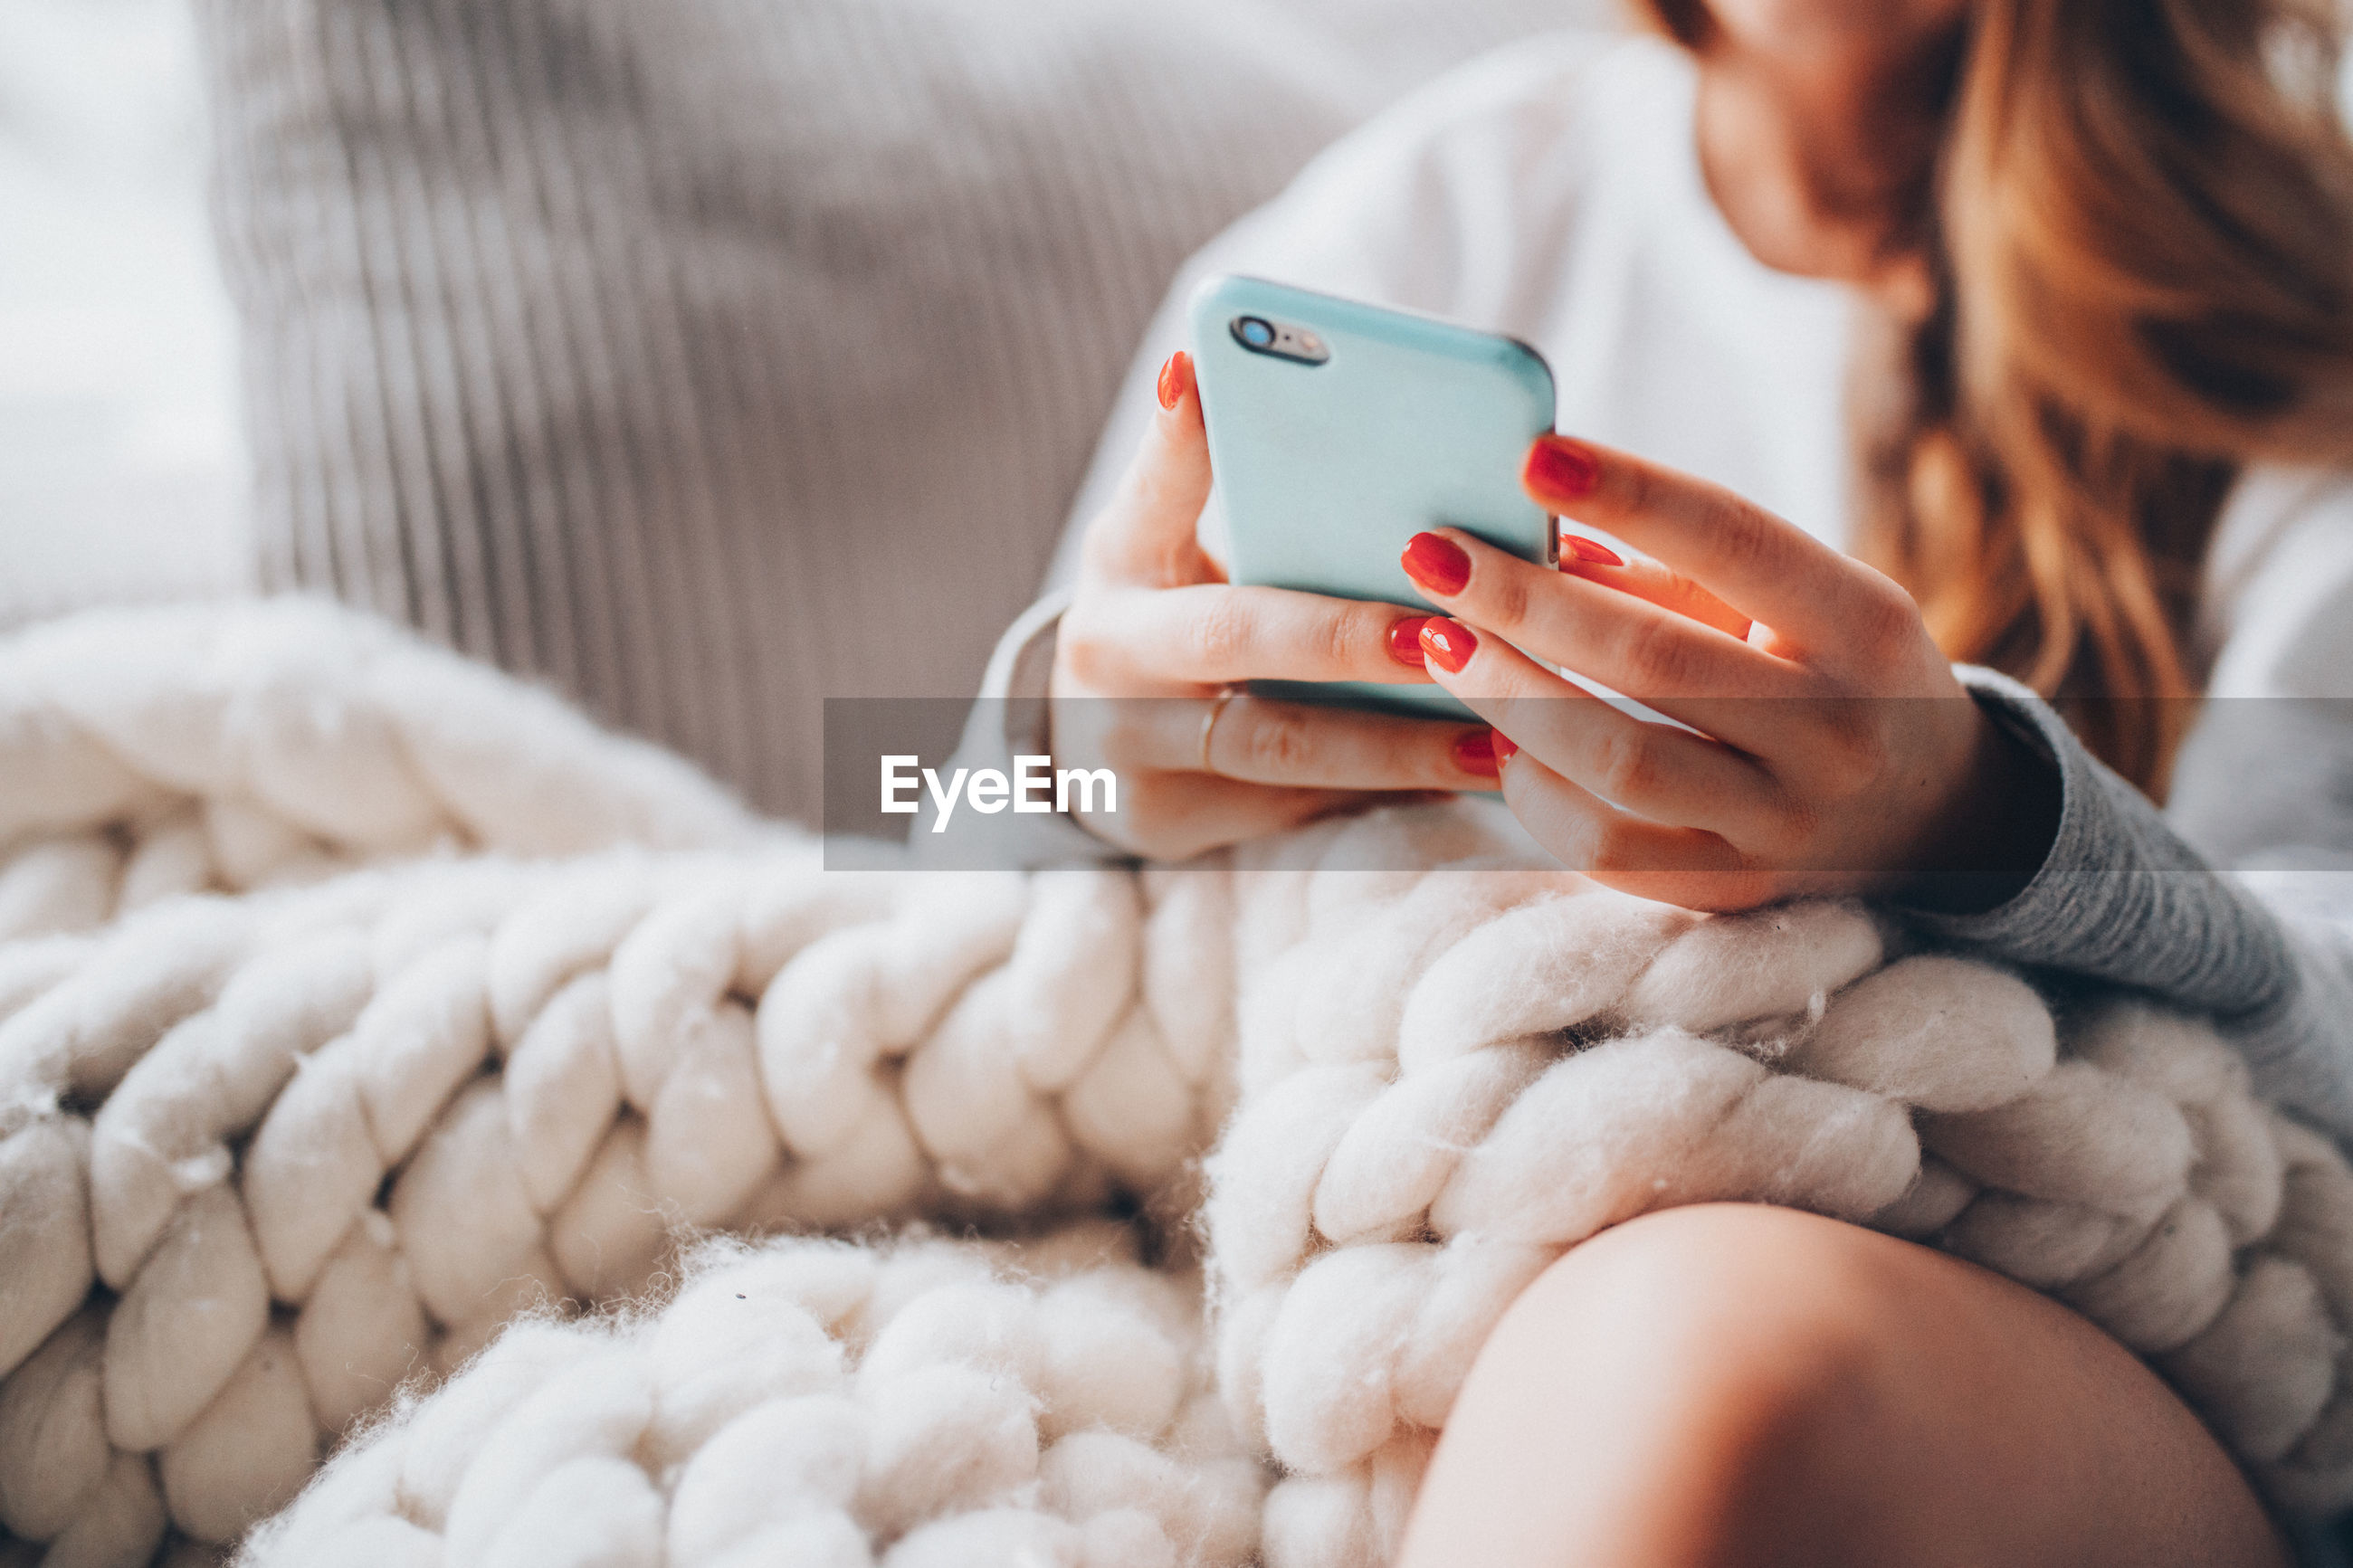 Midsection of woman using mobile phone while sitting on bed at home